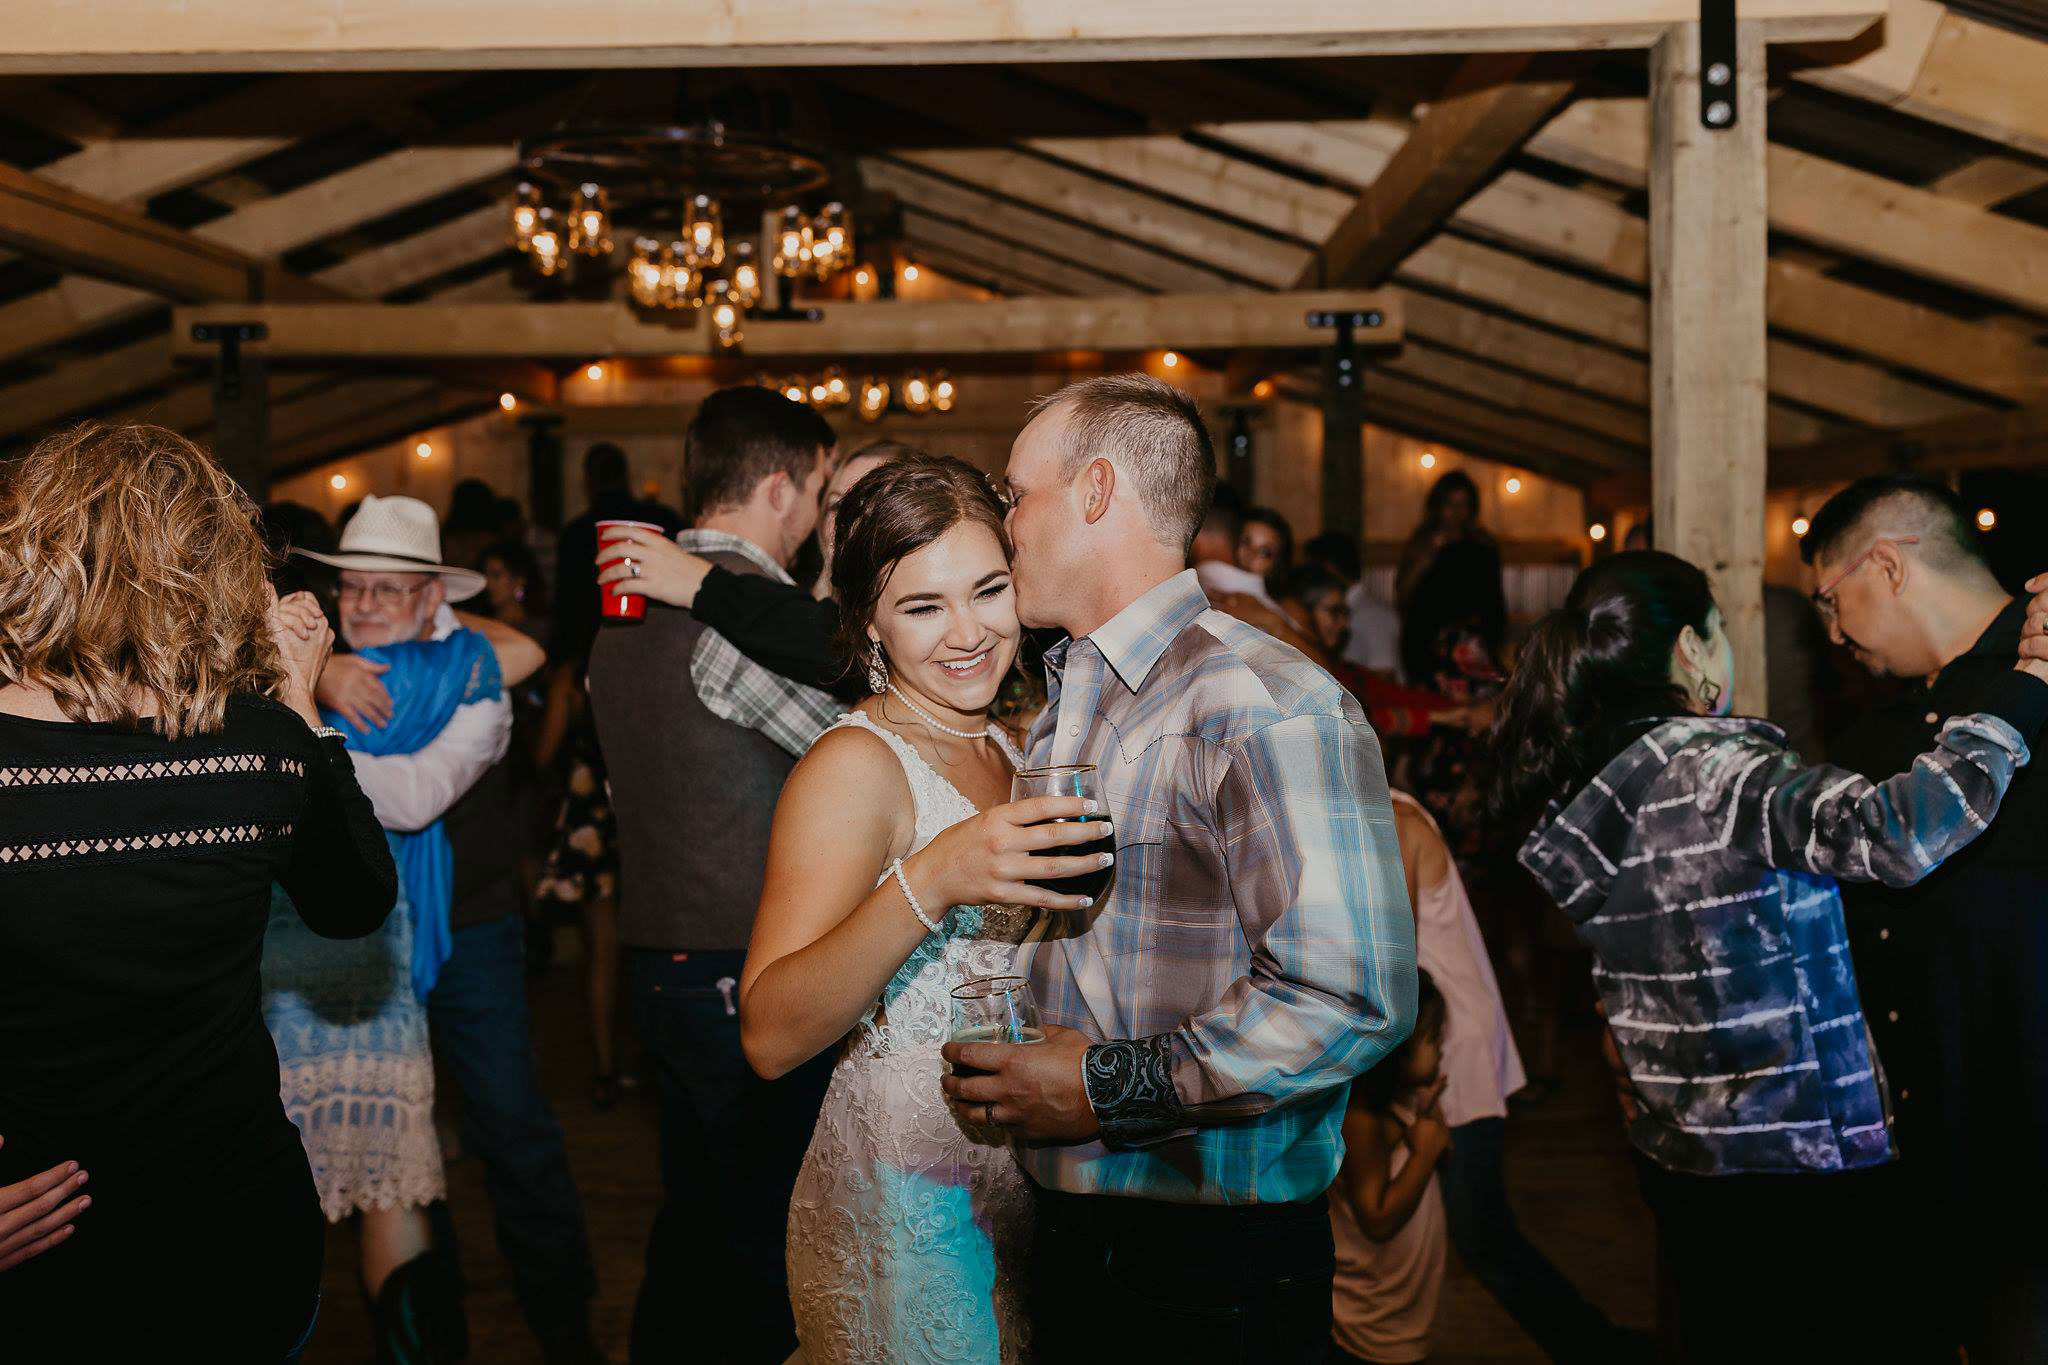 Dancing in the pavilion at Paradise Ranch in Pagosa Springs, Colorado